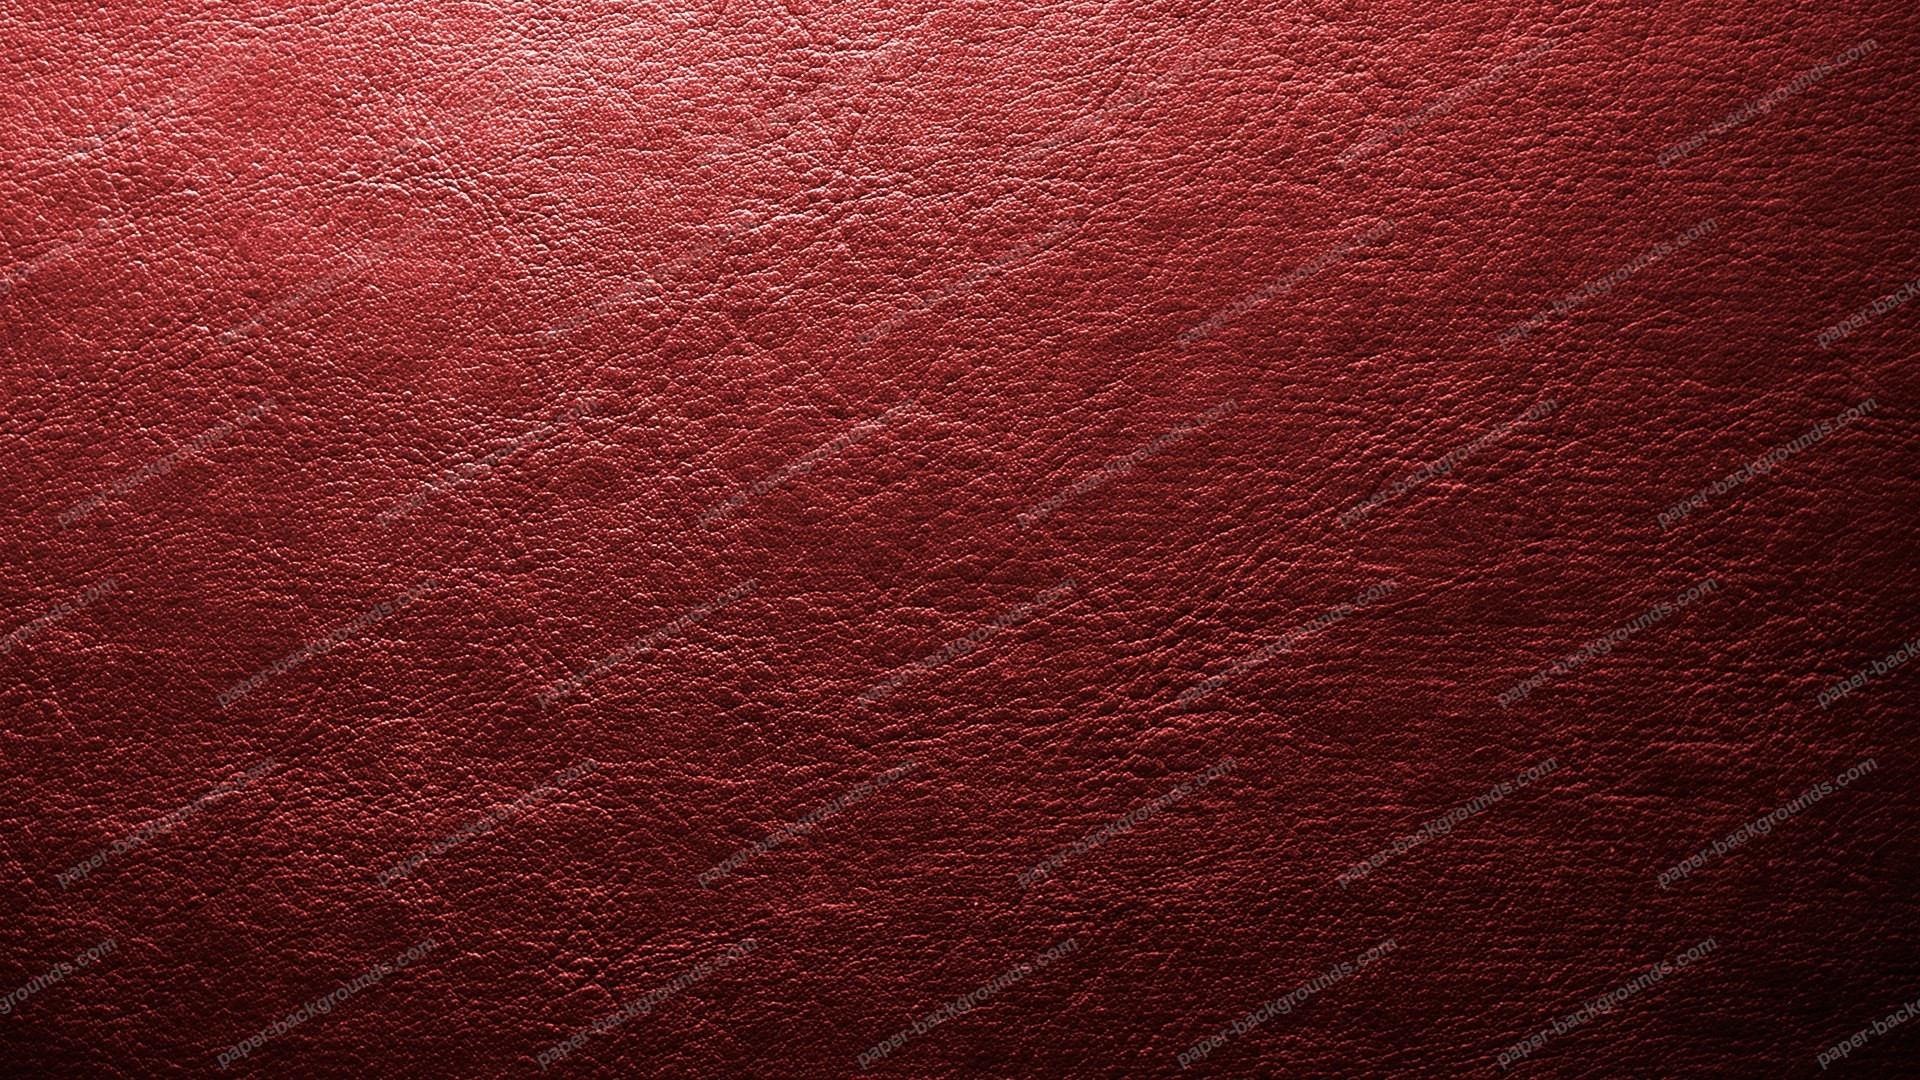 Red Leather Wallpaper